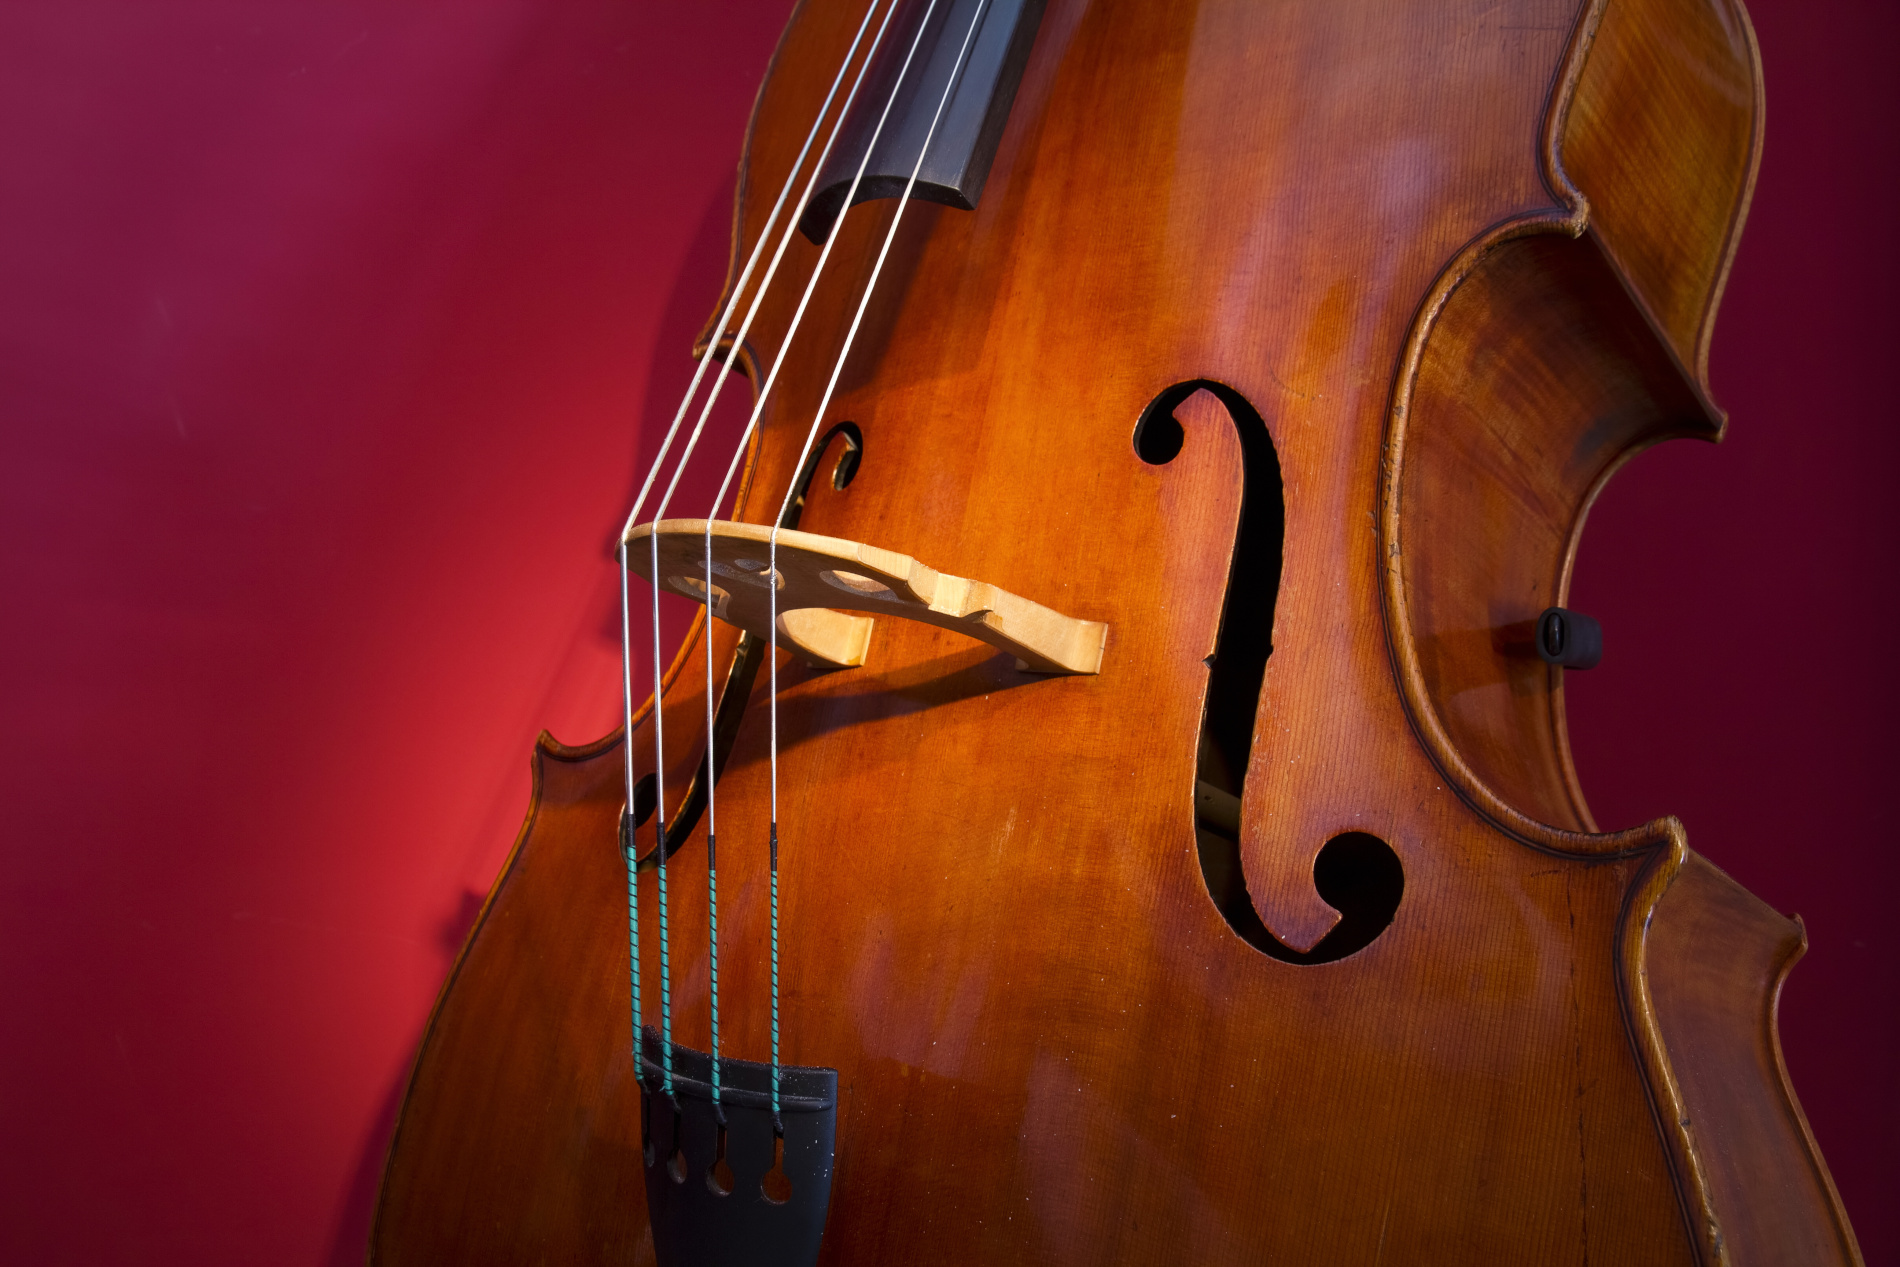 cello to buy or rent from Flocello store Hamilton